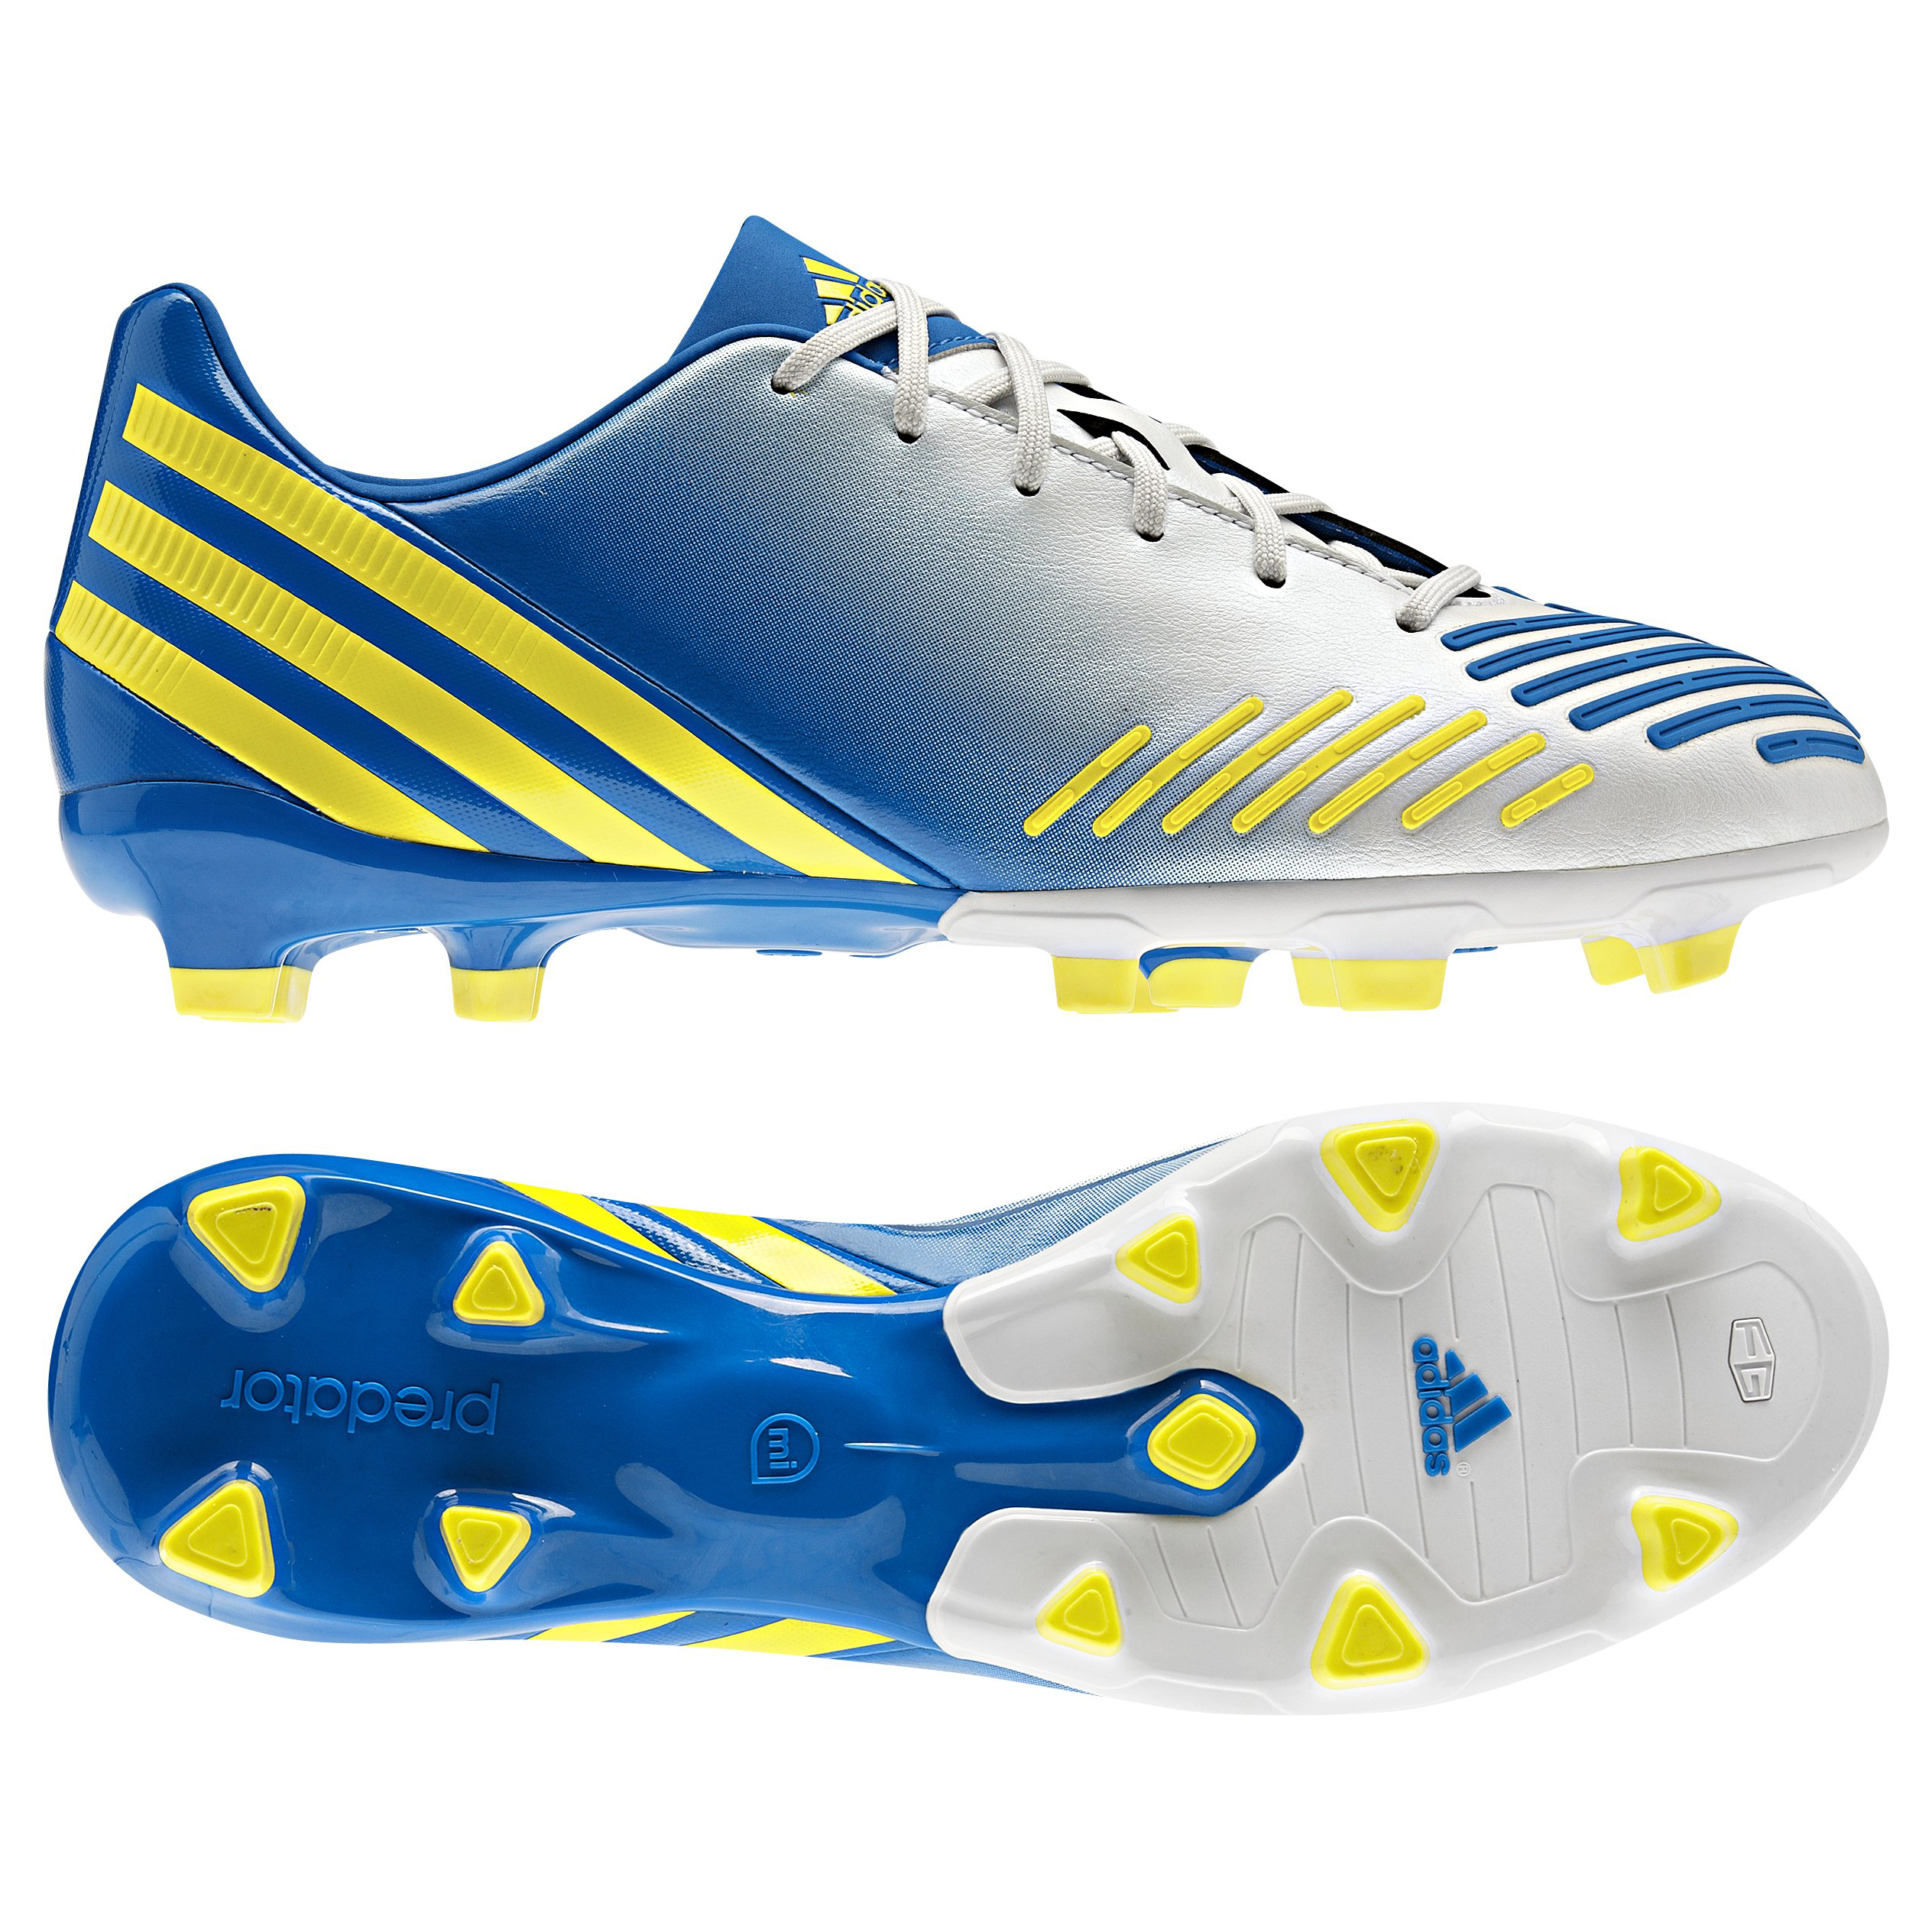 adidas Predator Absolion LZ TRX Firm Ground Football Boots - Running White/Vivid Yellow/Prime Blue